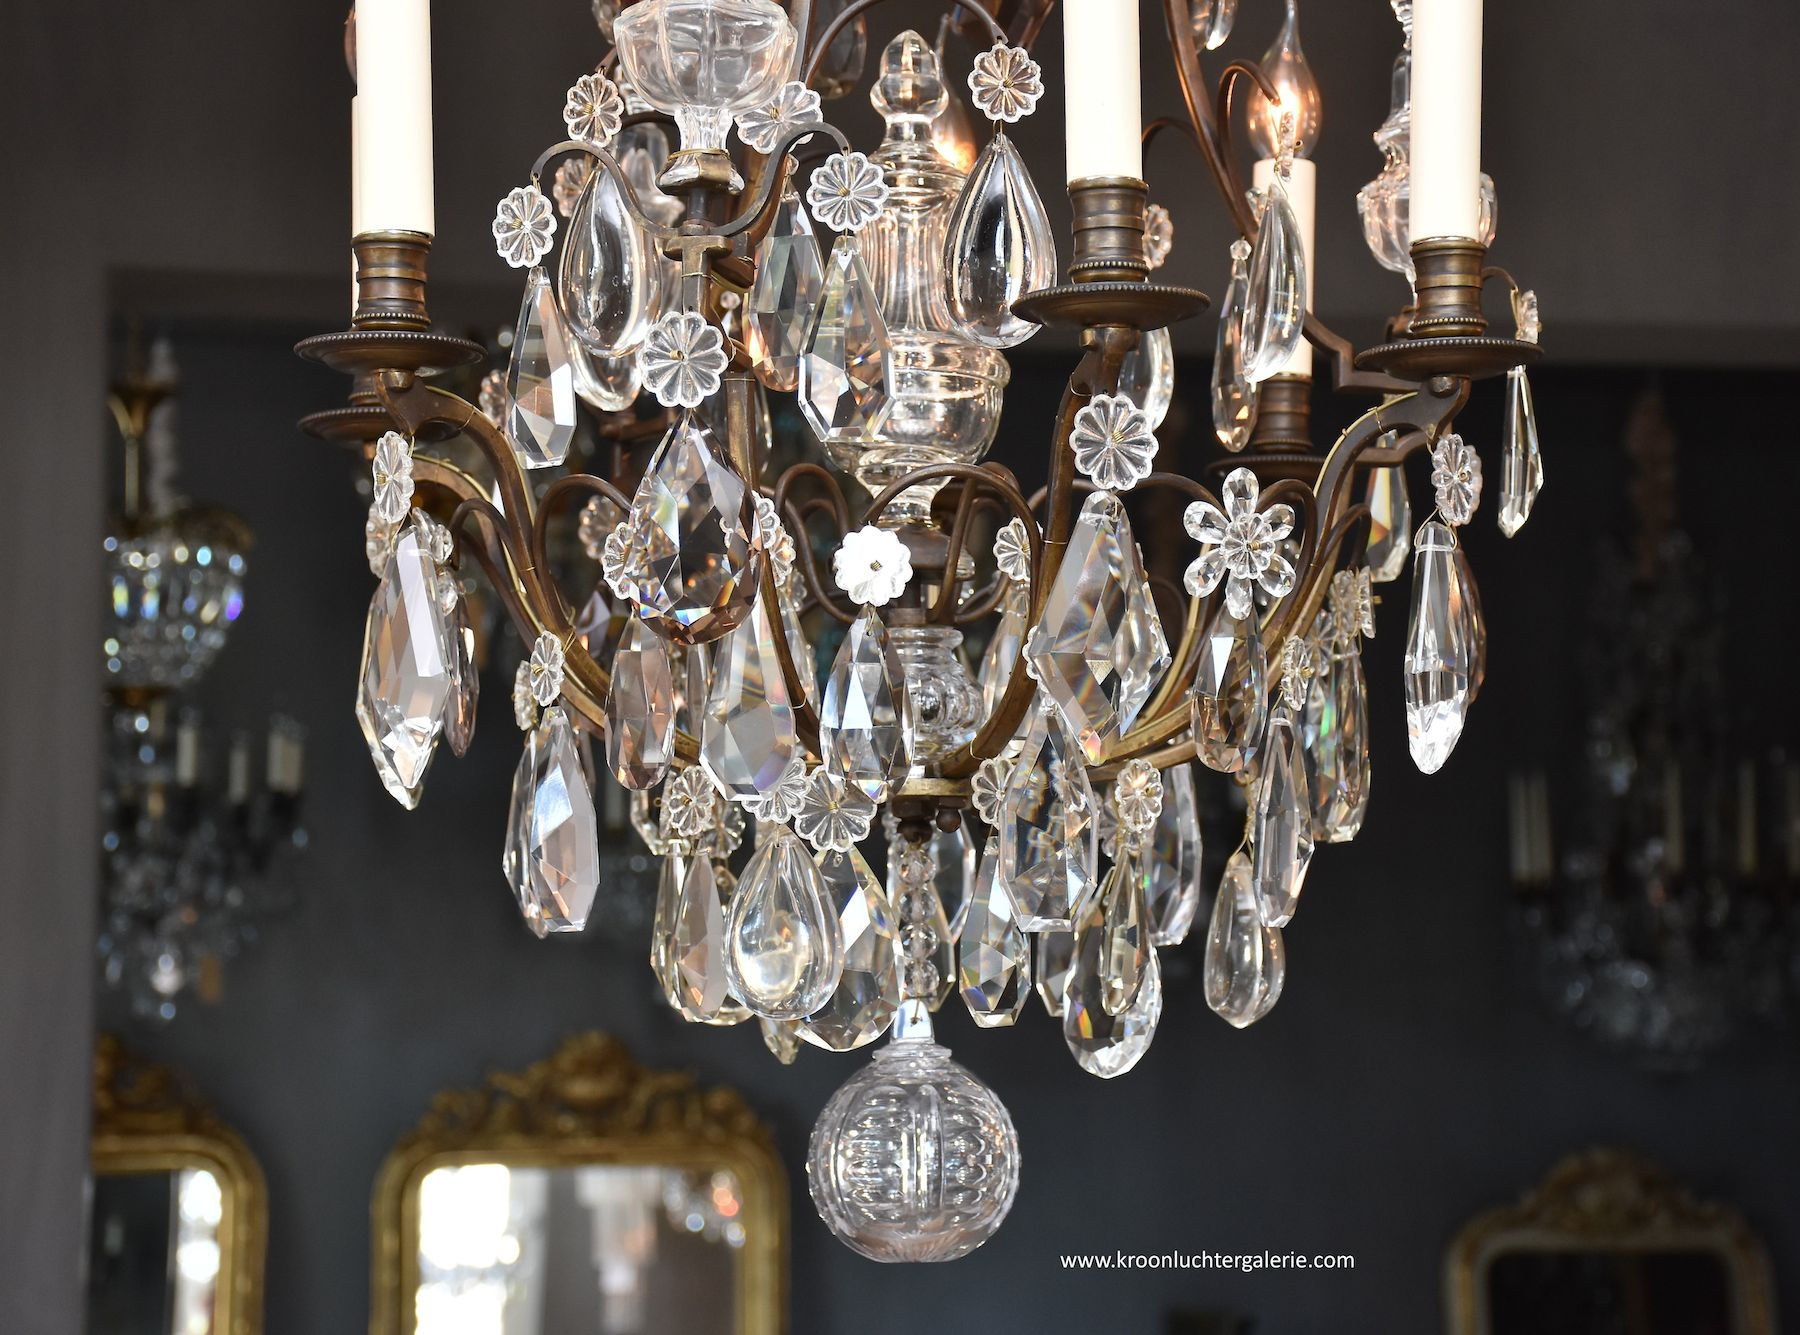 19th c. French chandelier in the style of Louis XV